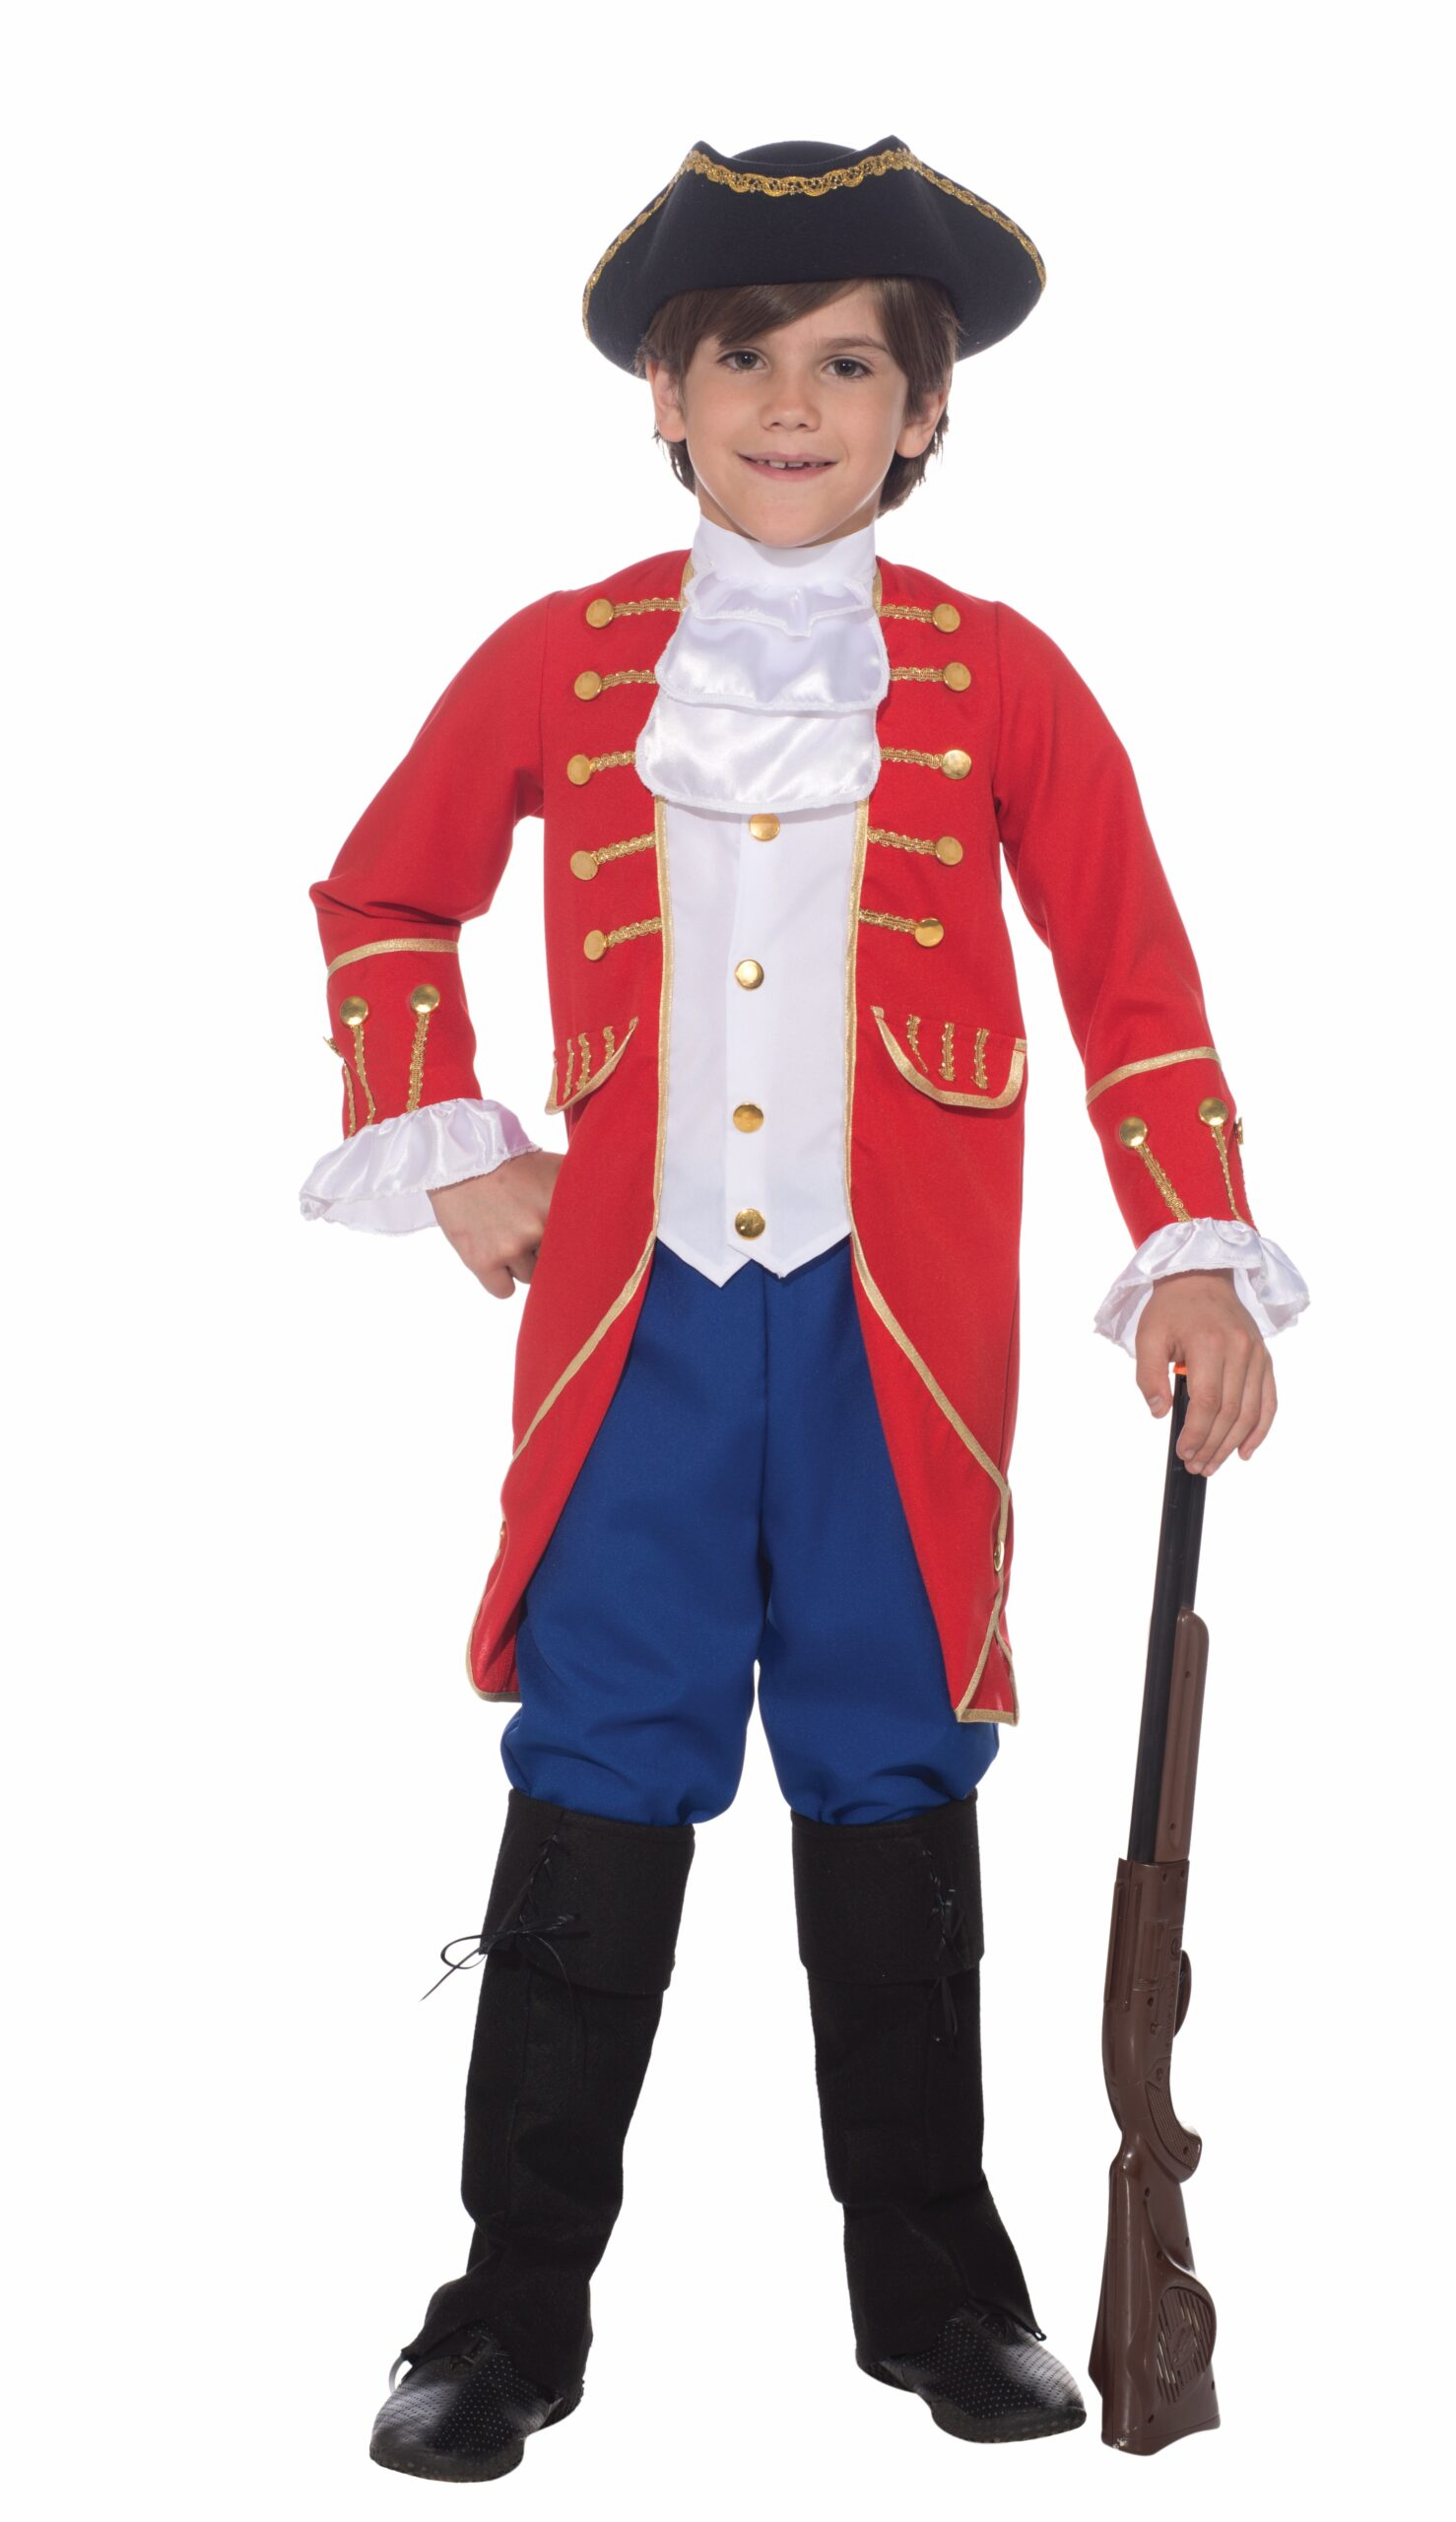 little boy in classic new england patriot costume with rifle hat and boots